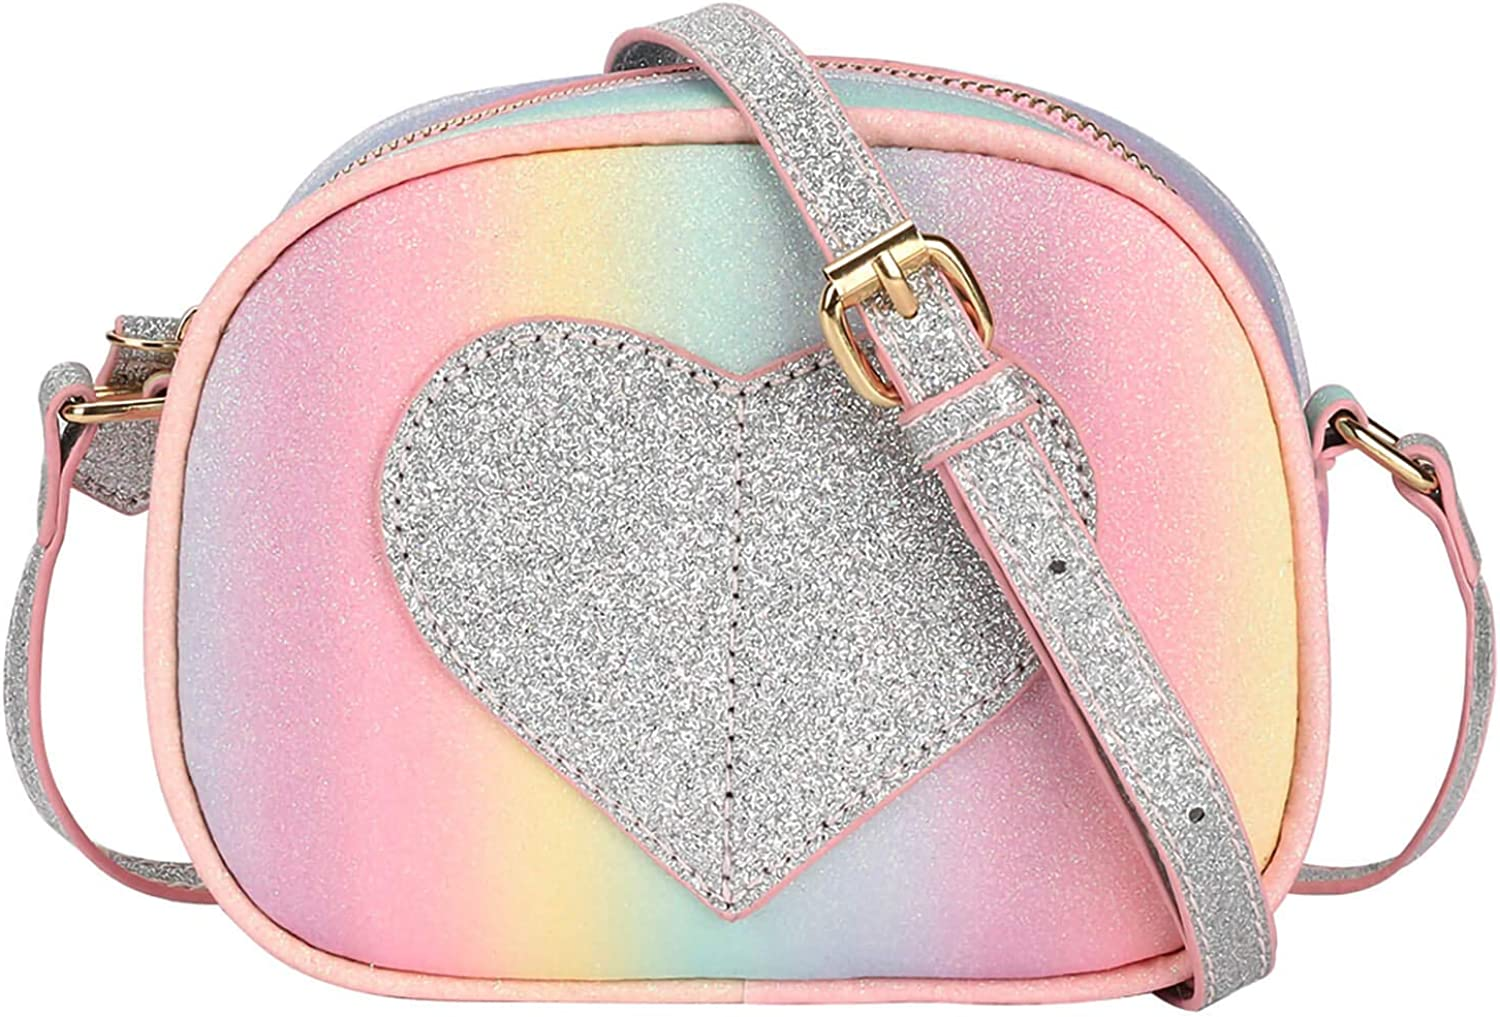 mibasies Little Girls Crossbody Purse Gift Presents for Kids